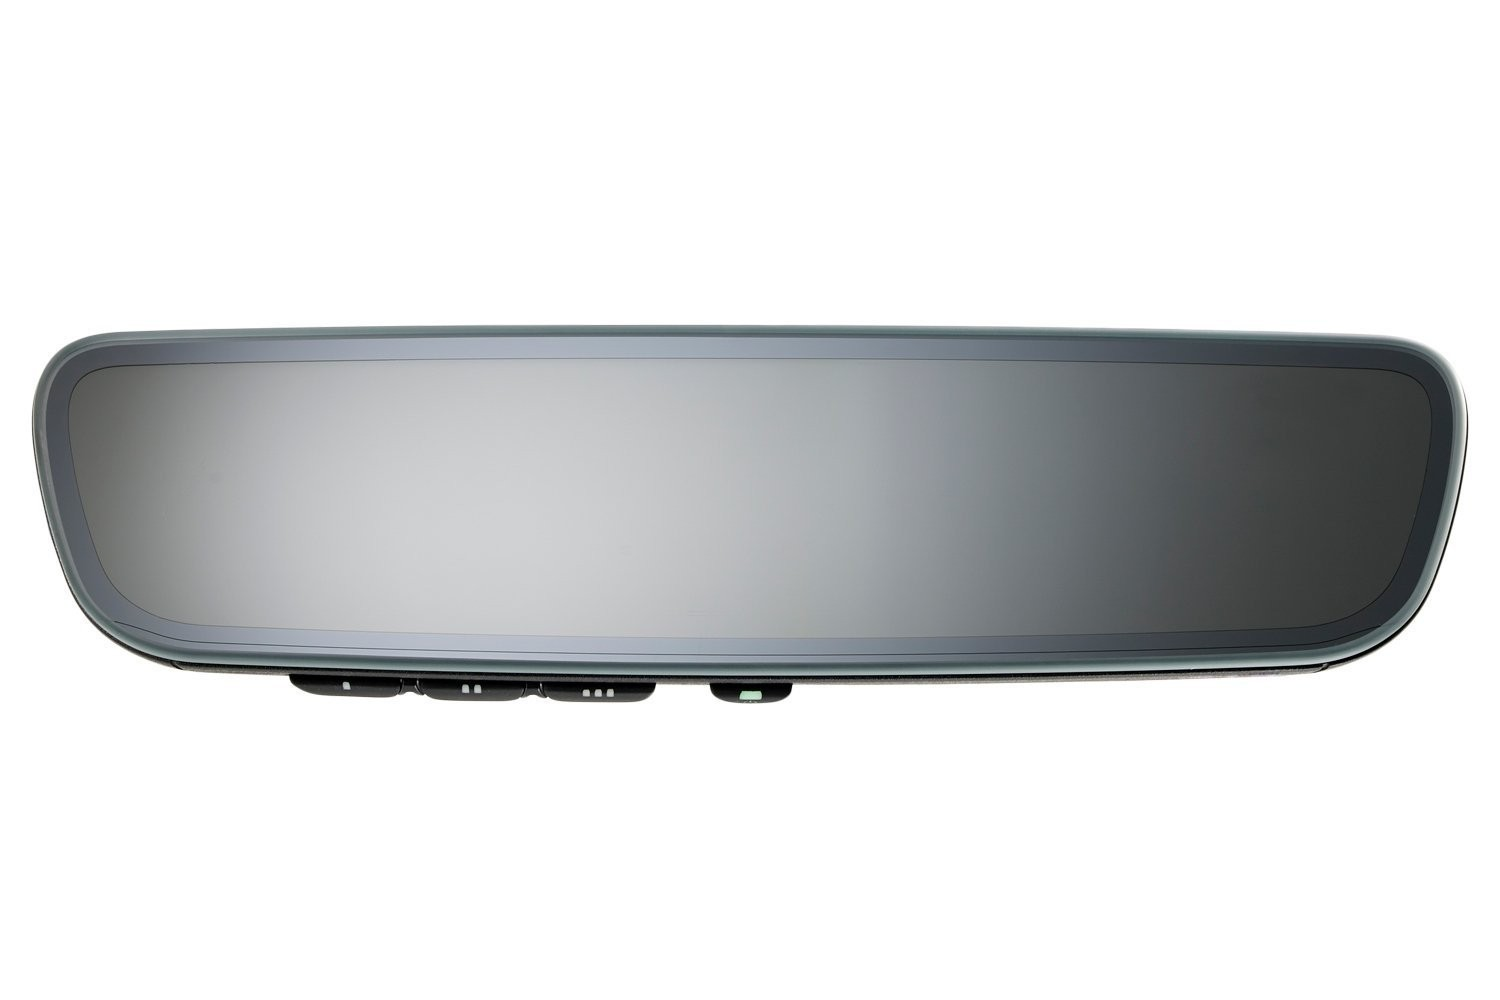 Amazon Gentex Series 8 Frameless Auto Dimming Mirror with Homelink 50